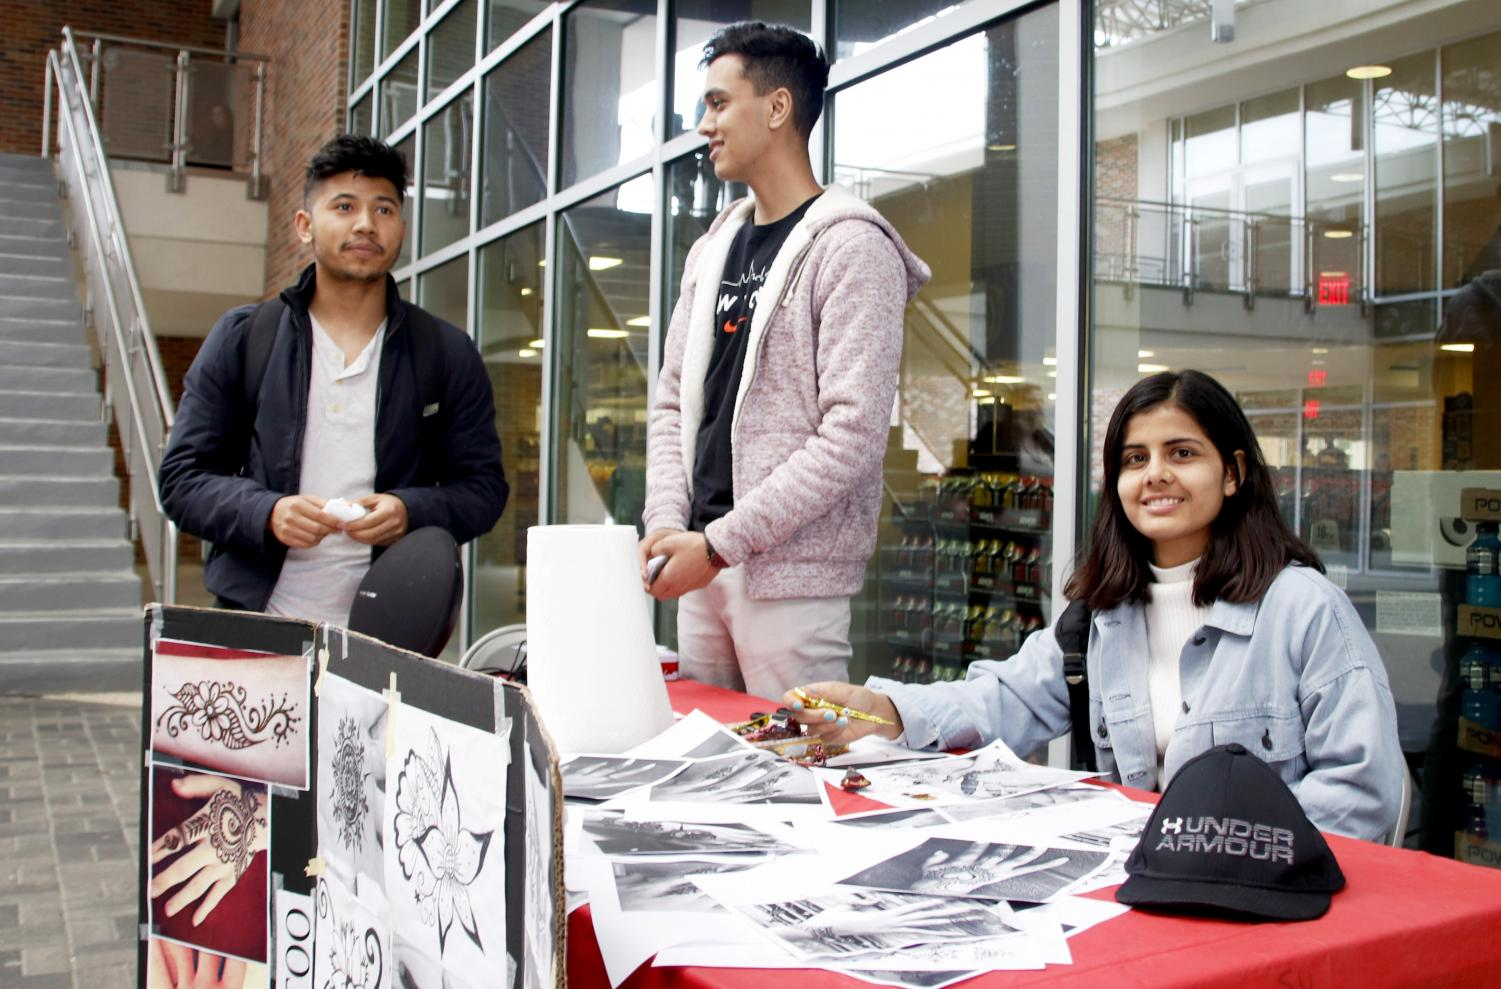 Members of the Nepalese Student Association at Southeastern sell henna tattoos to raise money for their organization. The university has 123 organizations students an join.